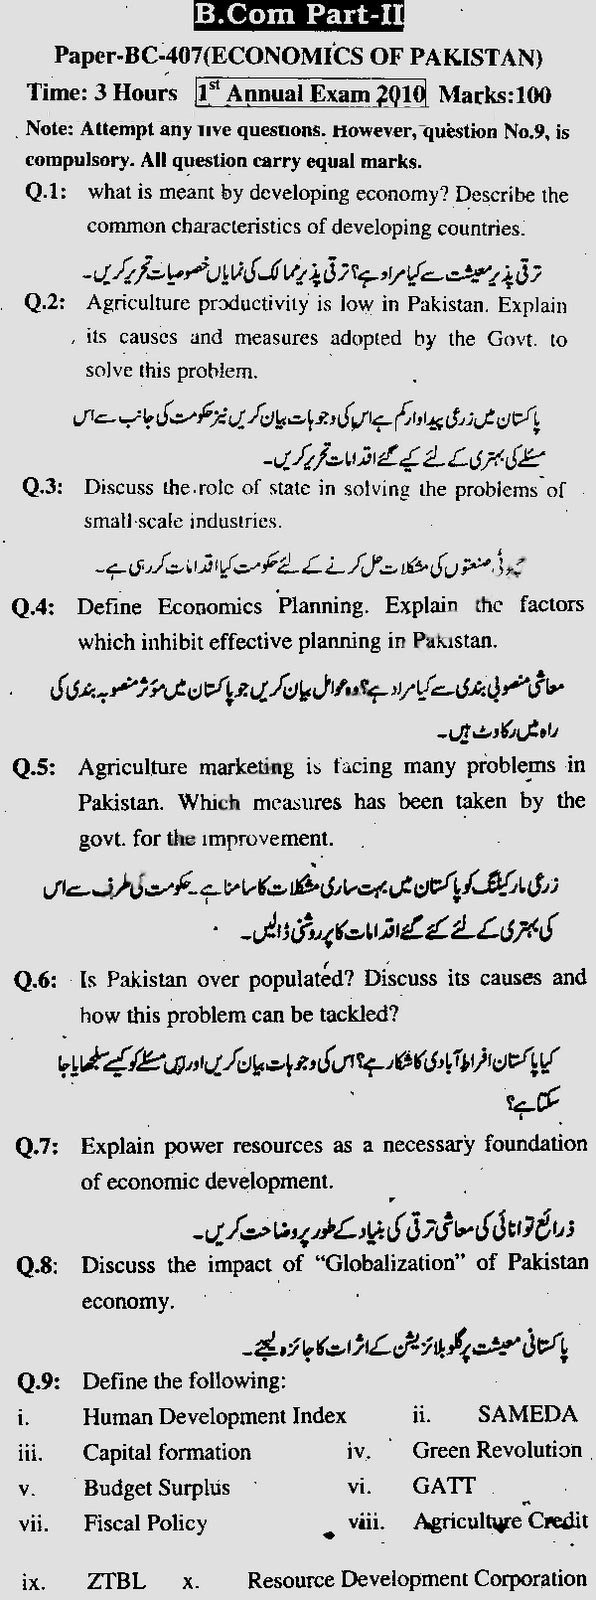 sargodha university bcom economics of pakistan past paper B.Com BC 407 Economics of Pakistan Past Paper University of Sargodha